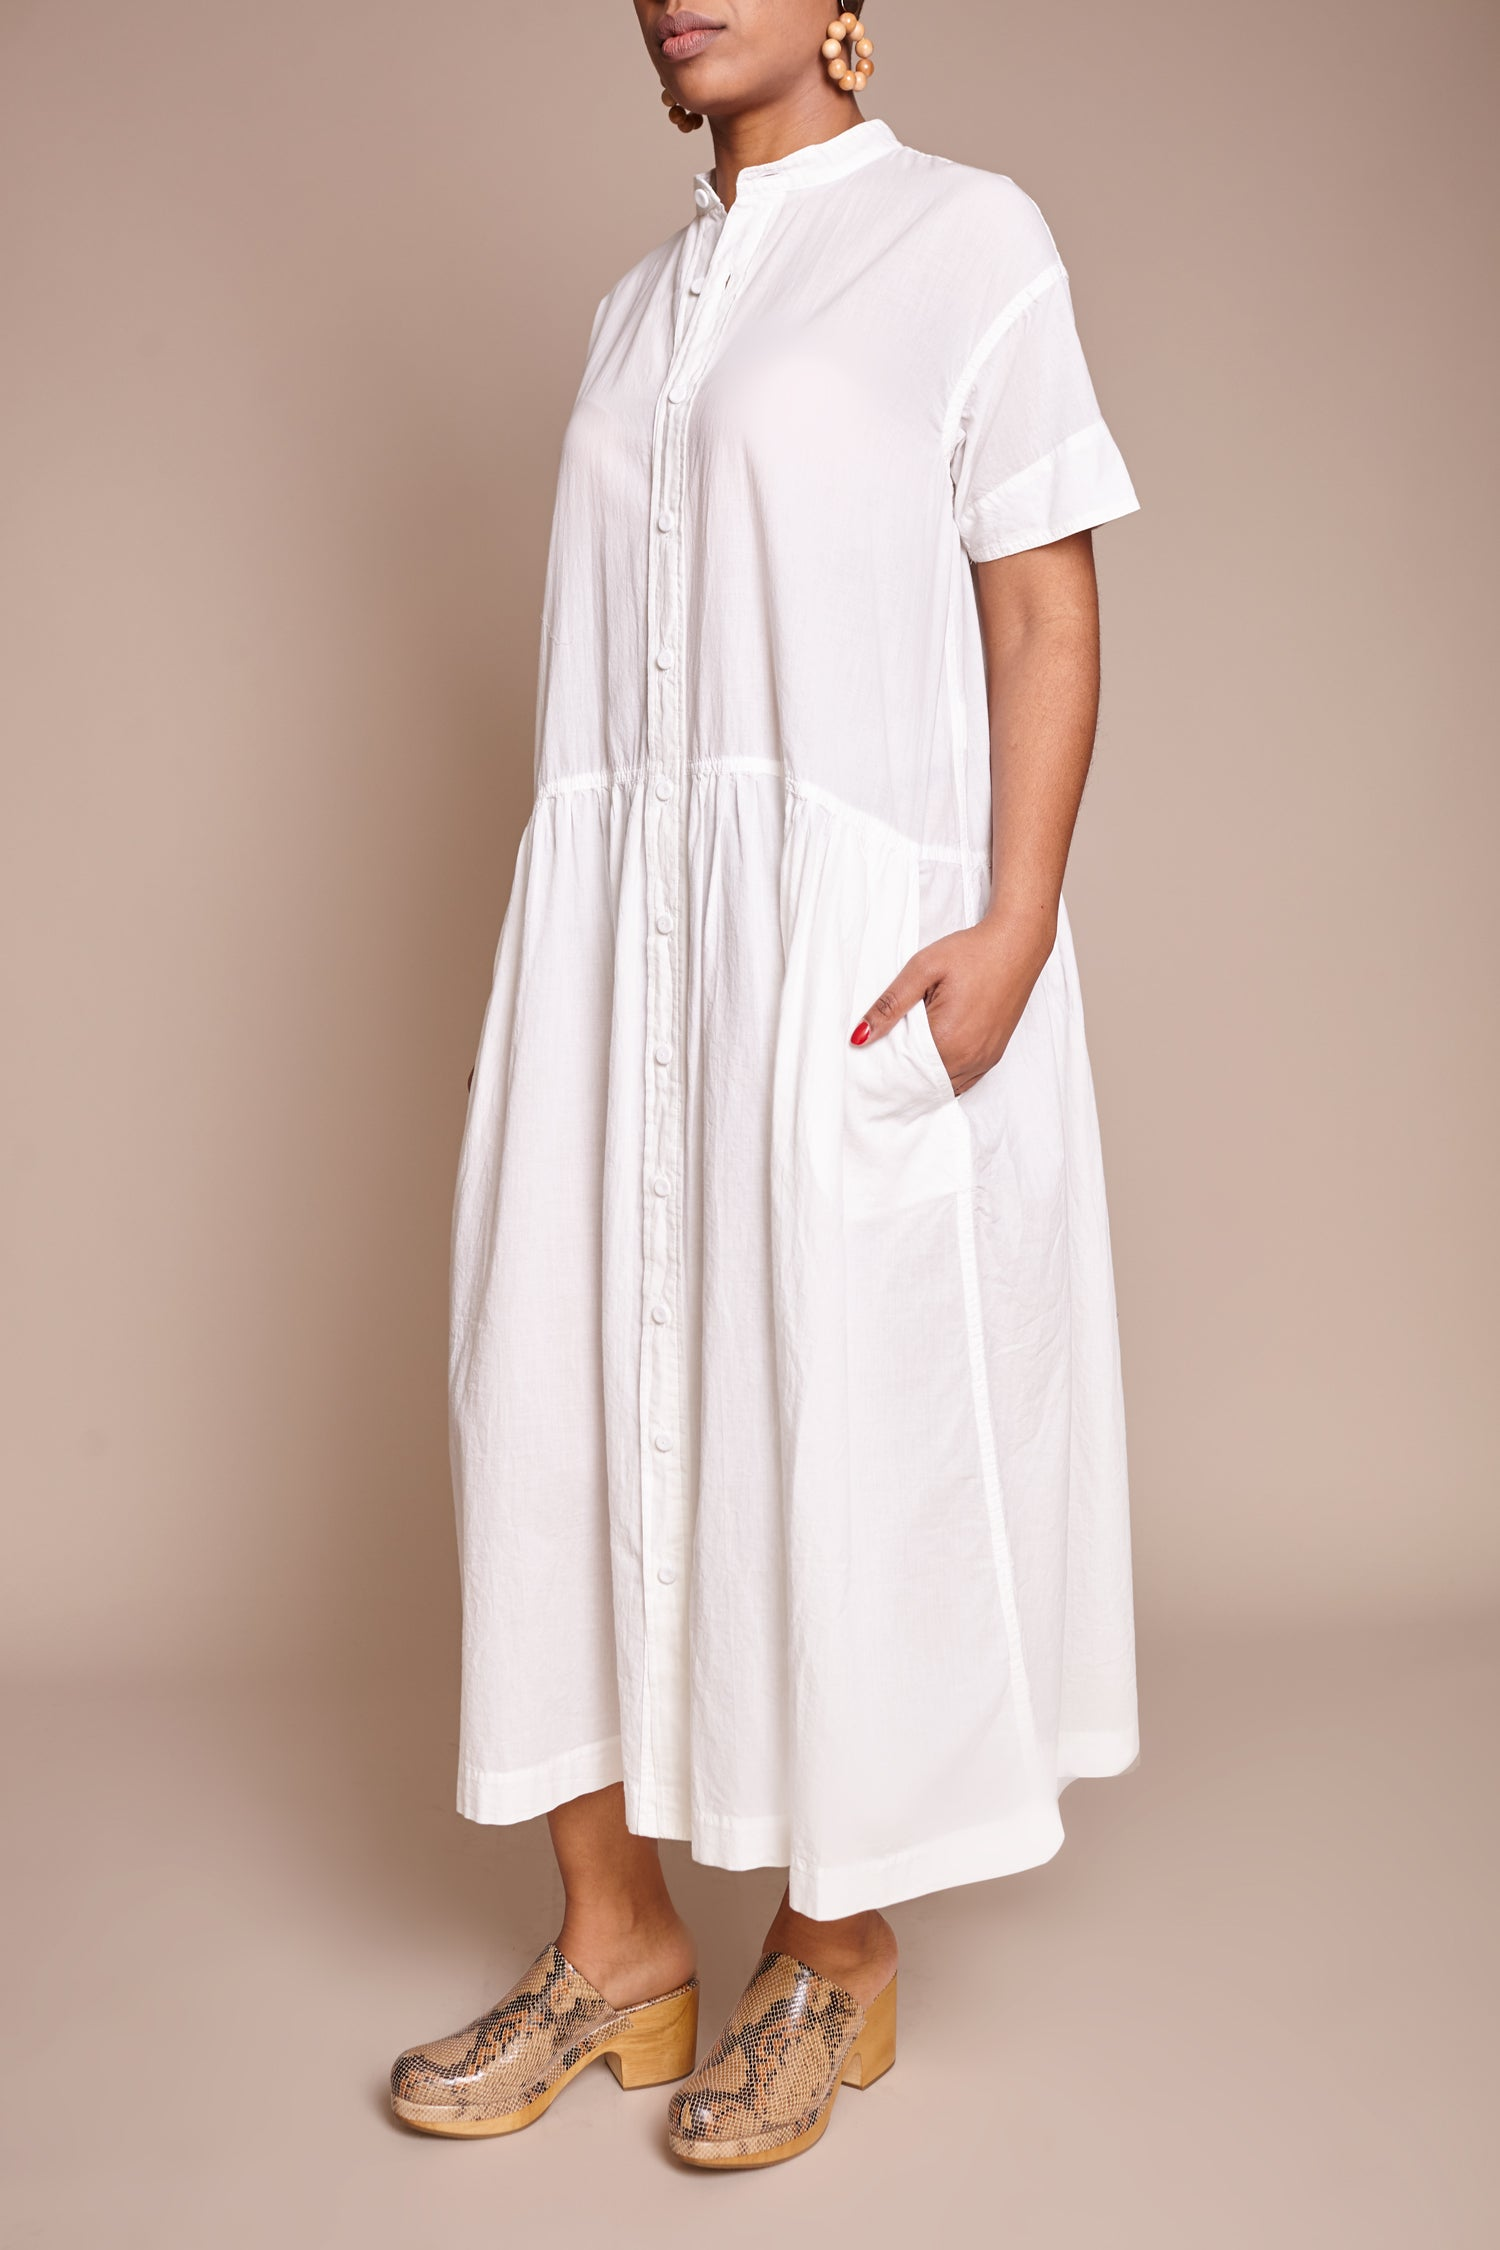 pas de calais Button Front Dress in White - Vert & Vogue